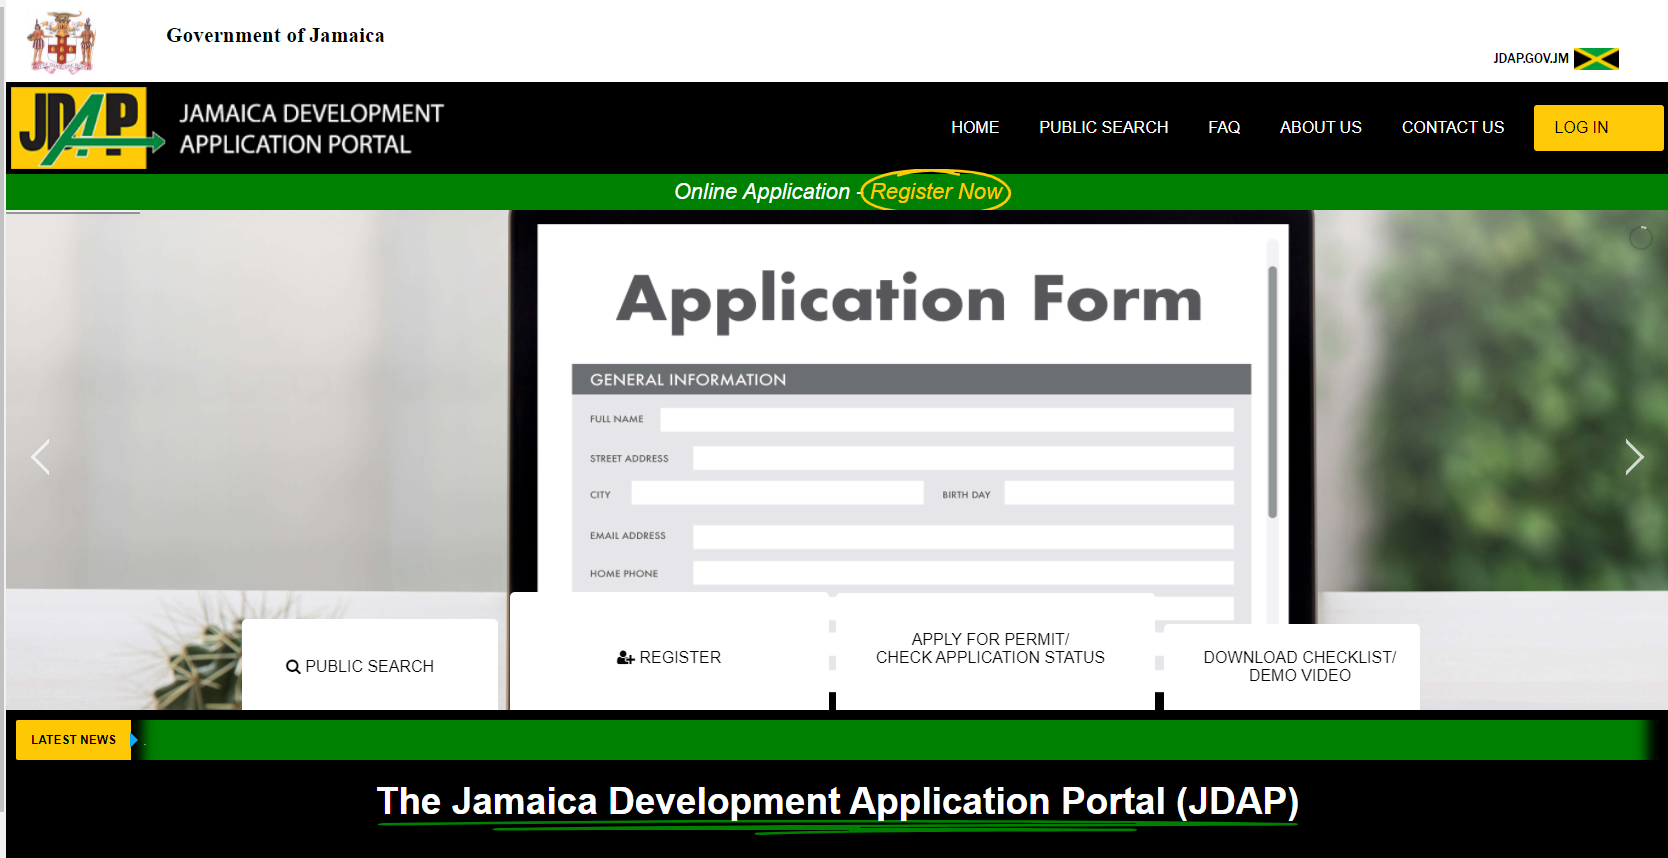 Jamaica Development Application Portal